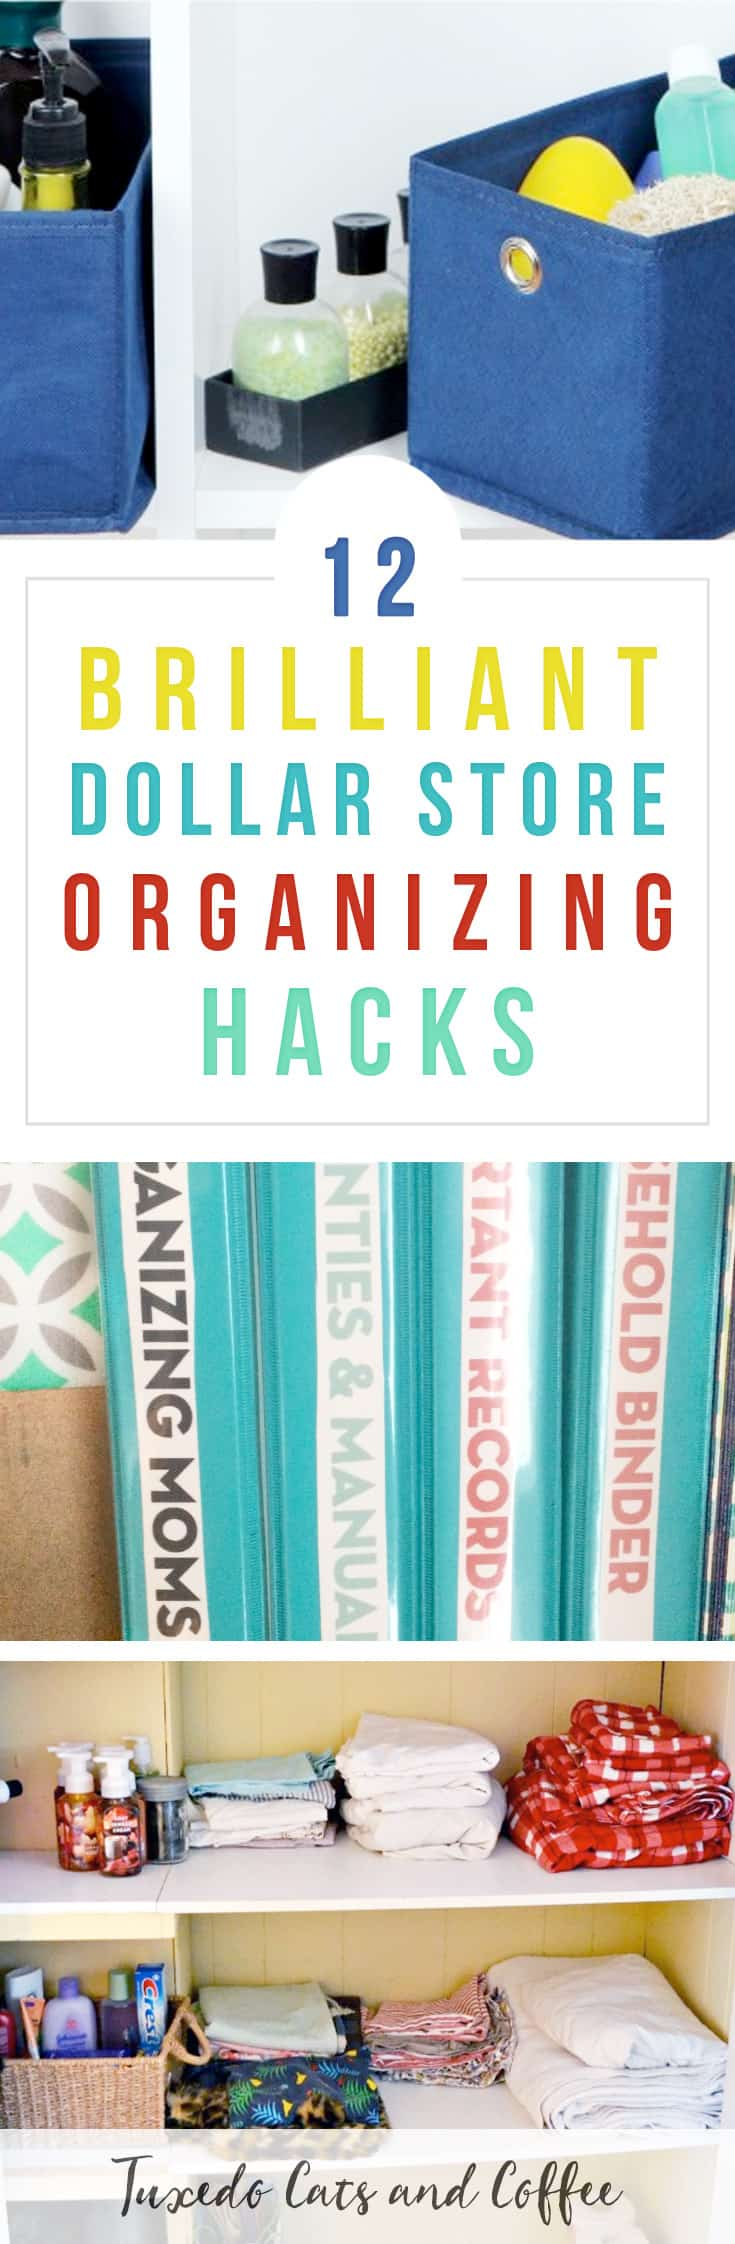 Organizing your home doesn't have to cost a ton of money. In fact, there are many Dollar Store organizing hacks that you can do for just $1 per container or with items you already have at home. Here are a bunch of dollar store organizing hacks from blogs across the web.